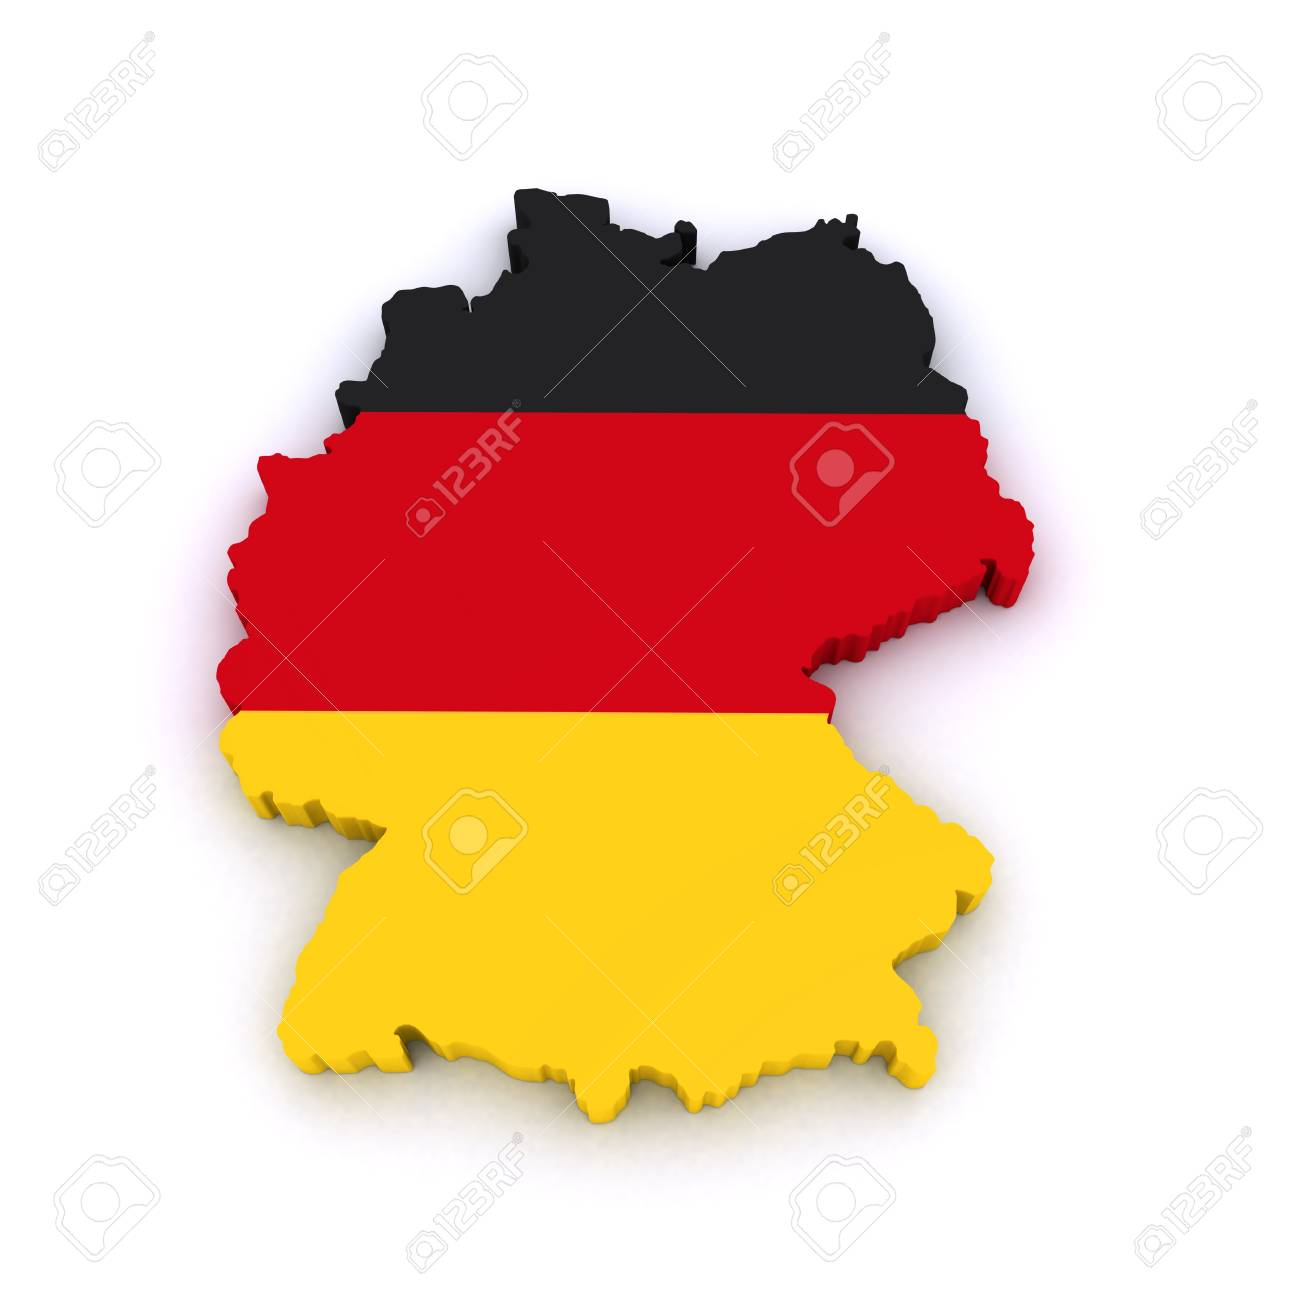 3d map of Germany Stock Photo - 10819791